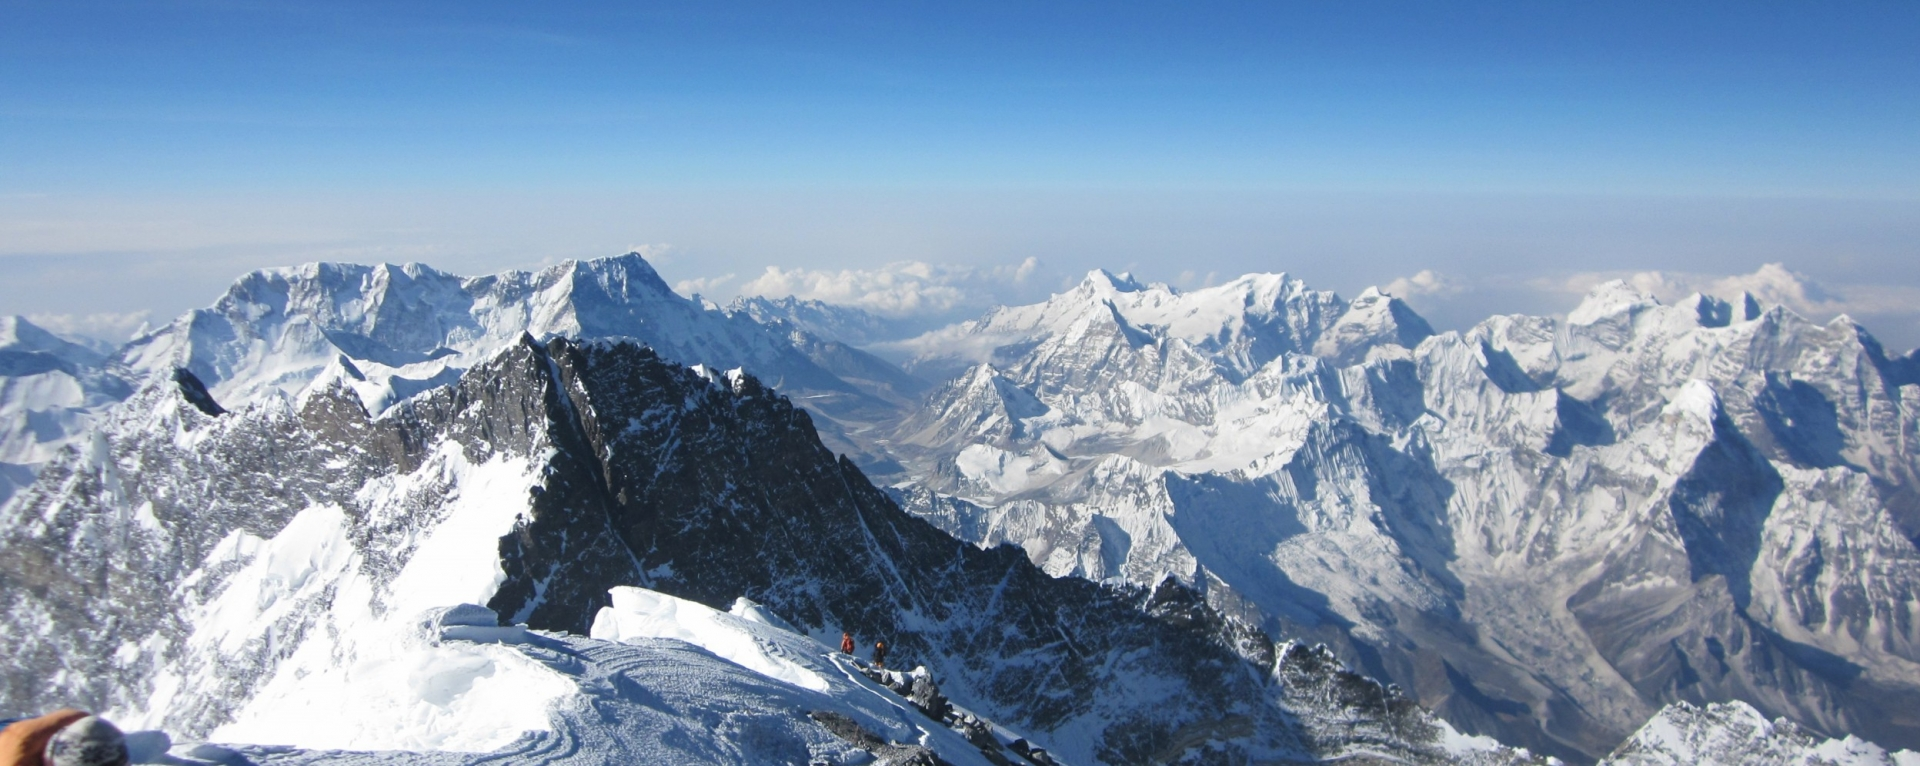 The view of Lhotse and Khumbu mountains from the summit of Mt. Everest(8848)